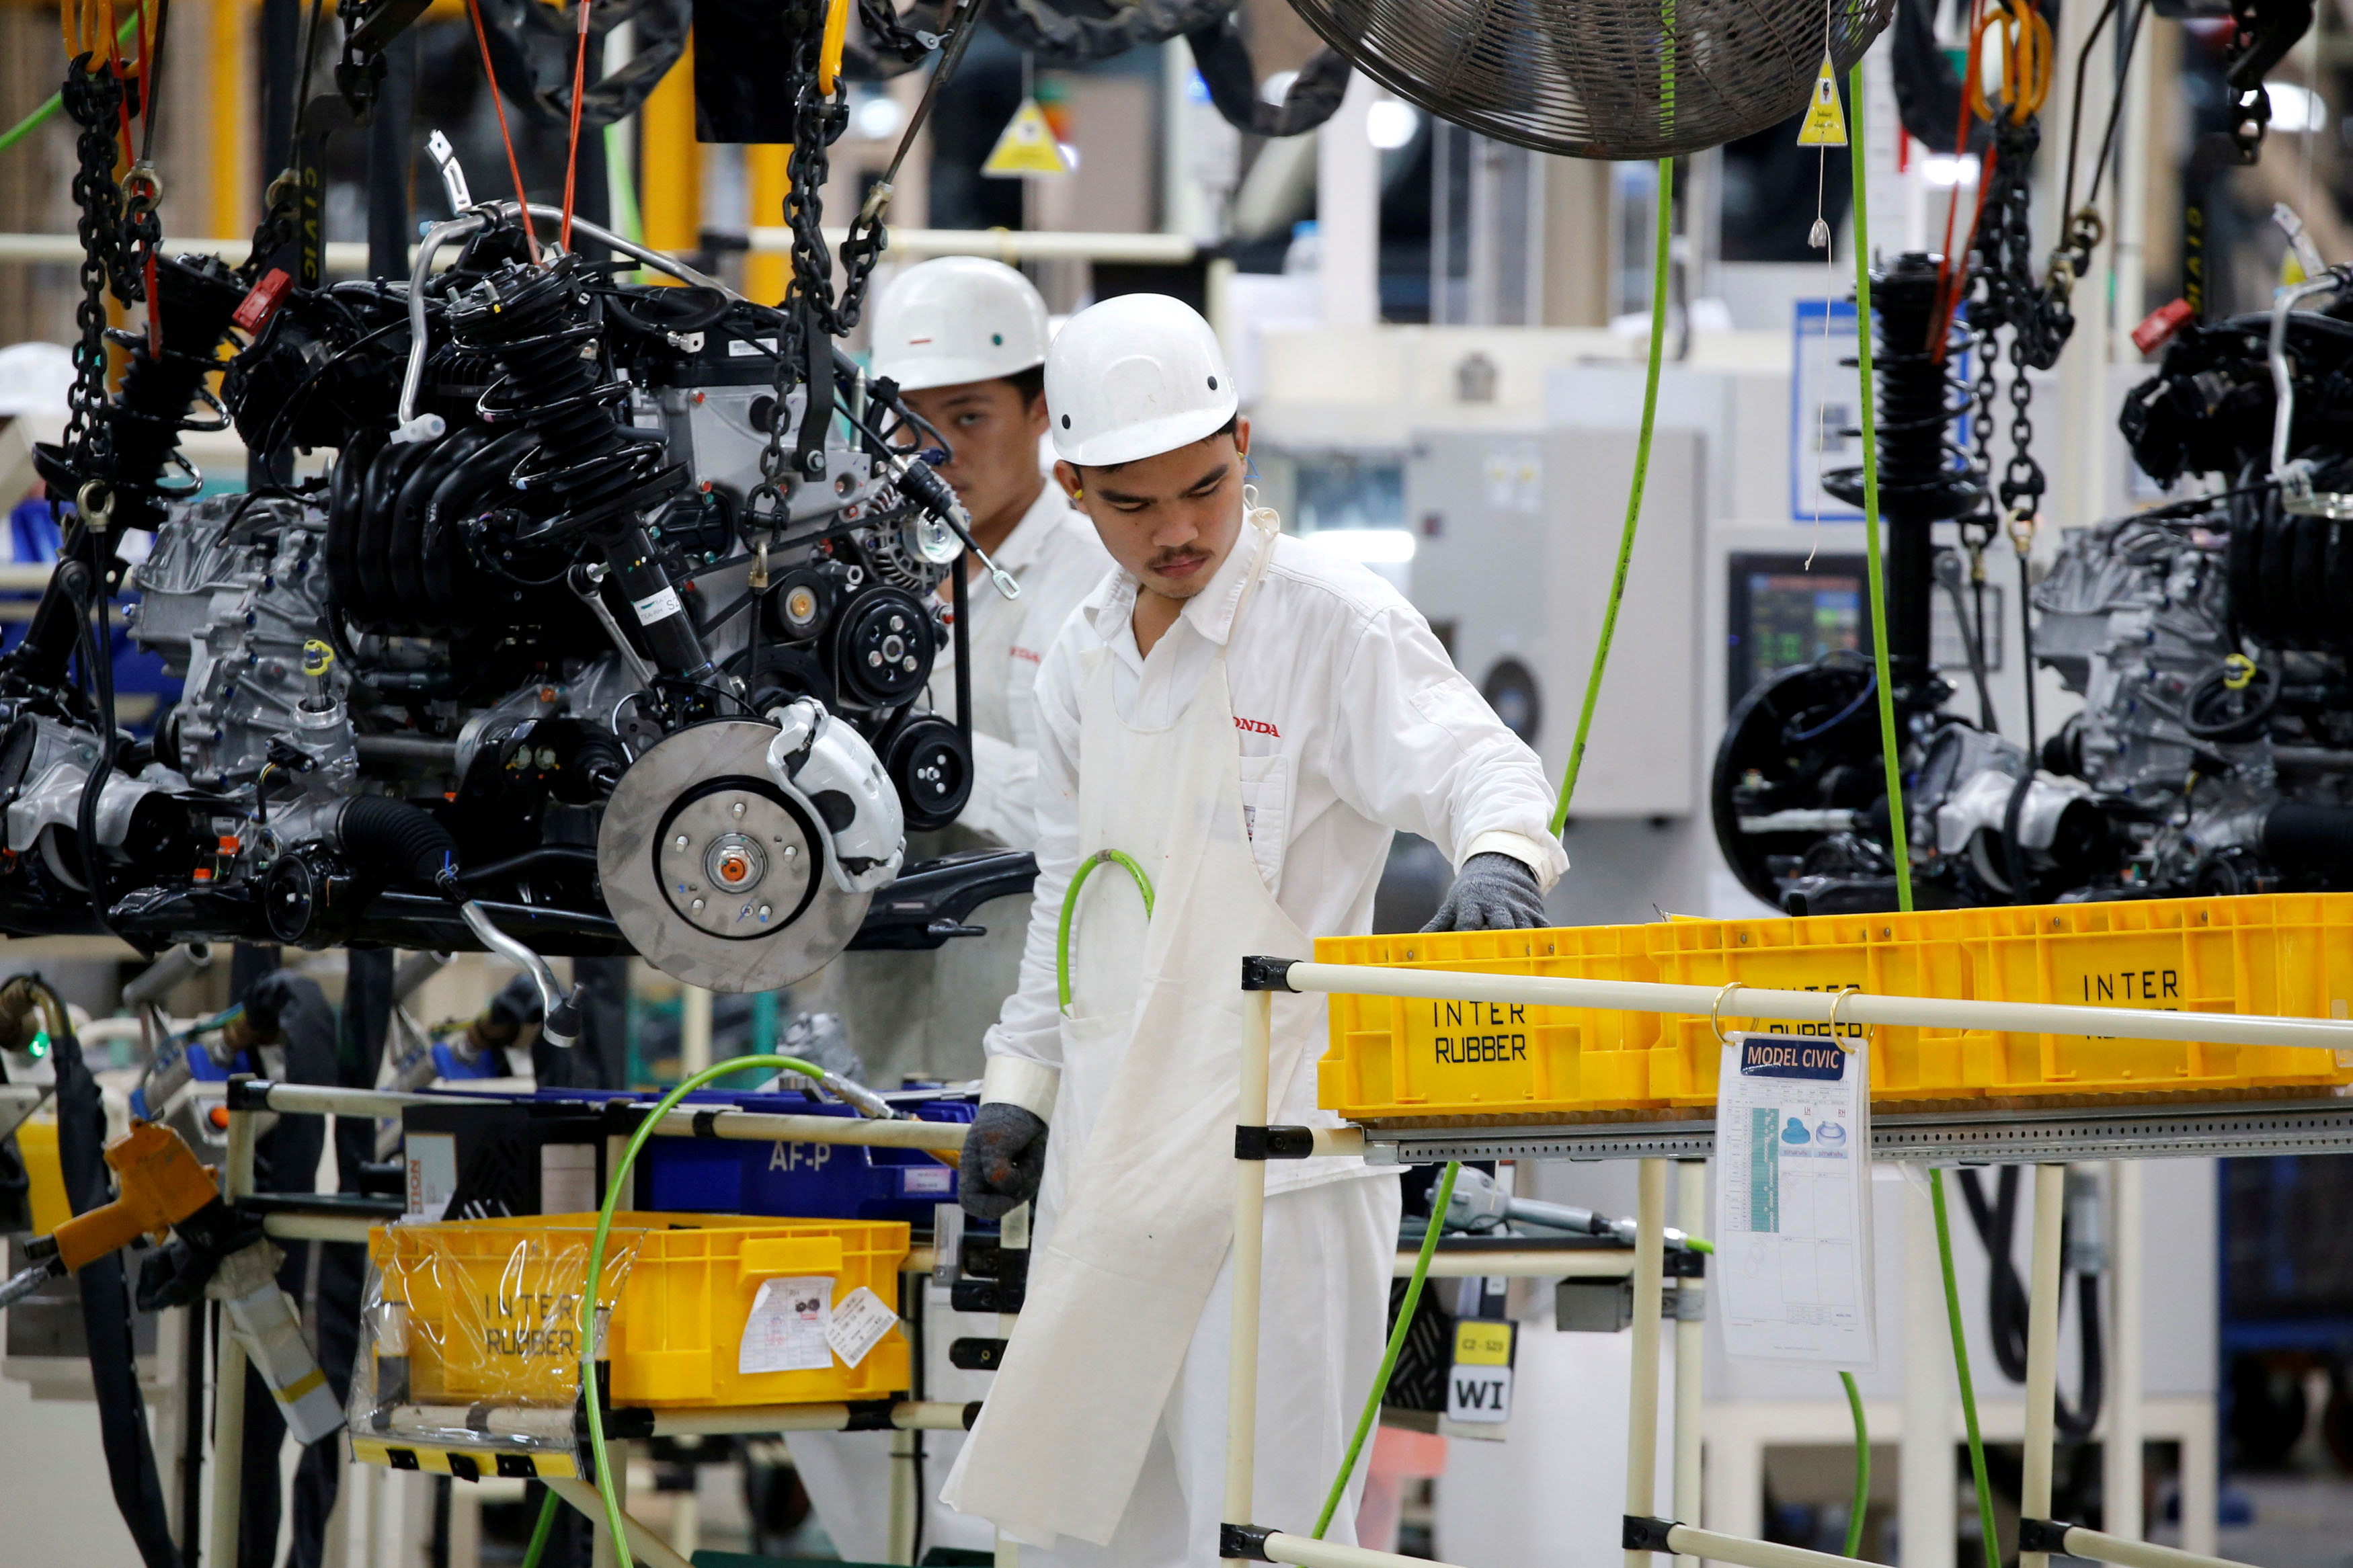 A man works in the automobile production line of the new Honda plant in Prachinburi, Thailand, May 12, 2016. Picture taken May 12, 2016. REUTERS/Jorge Silva - RTSKITY